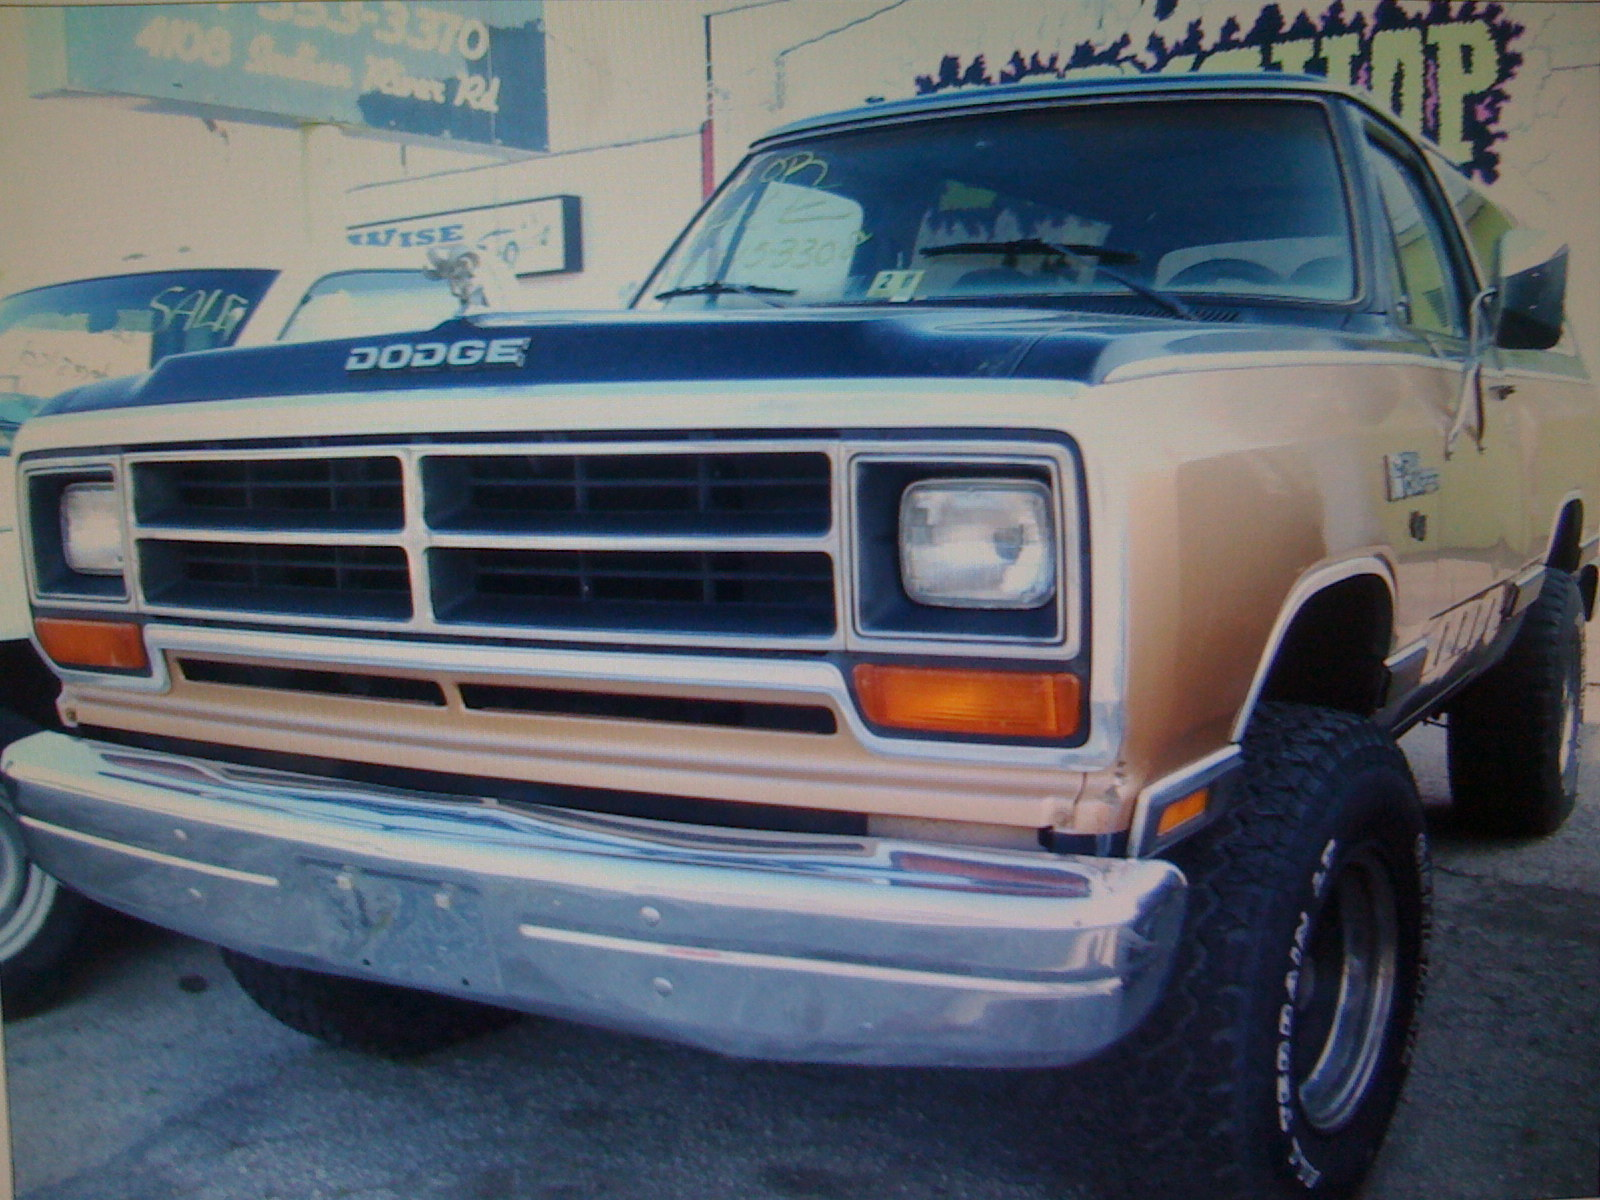 Blkcharger 1987 Dodge Ramcharger Specs Photos Modification Info At Cardomain